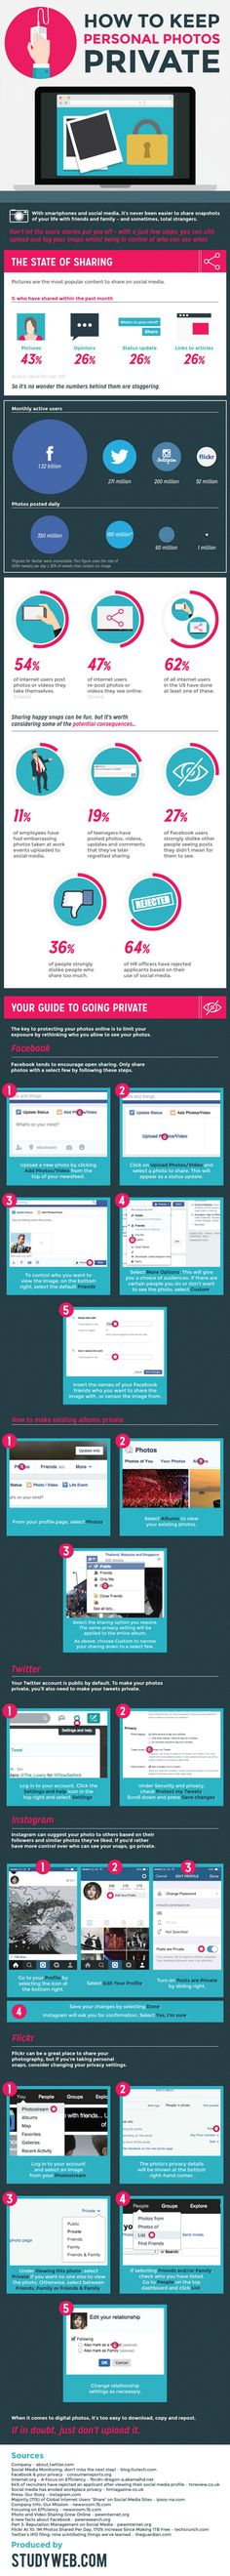 How to Keep Personal Photos Private on #Facebook #Twitter & More [Infographic], via @HubSpot #socialmedia